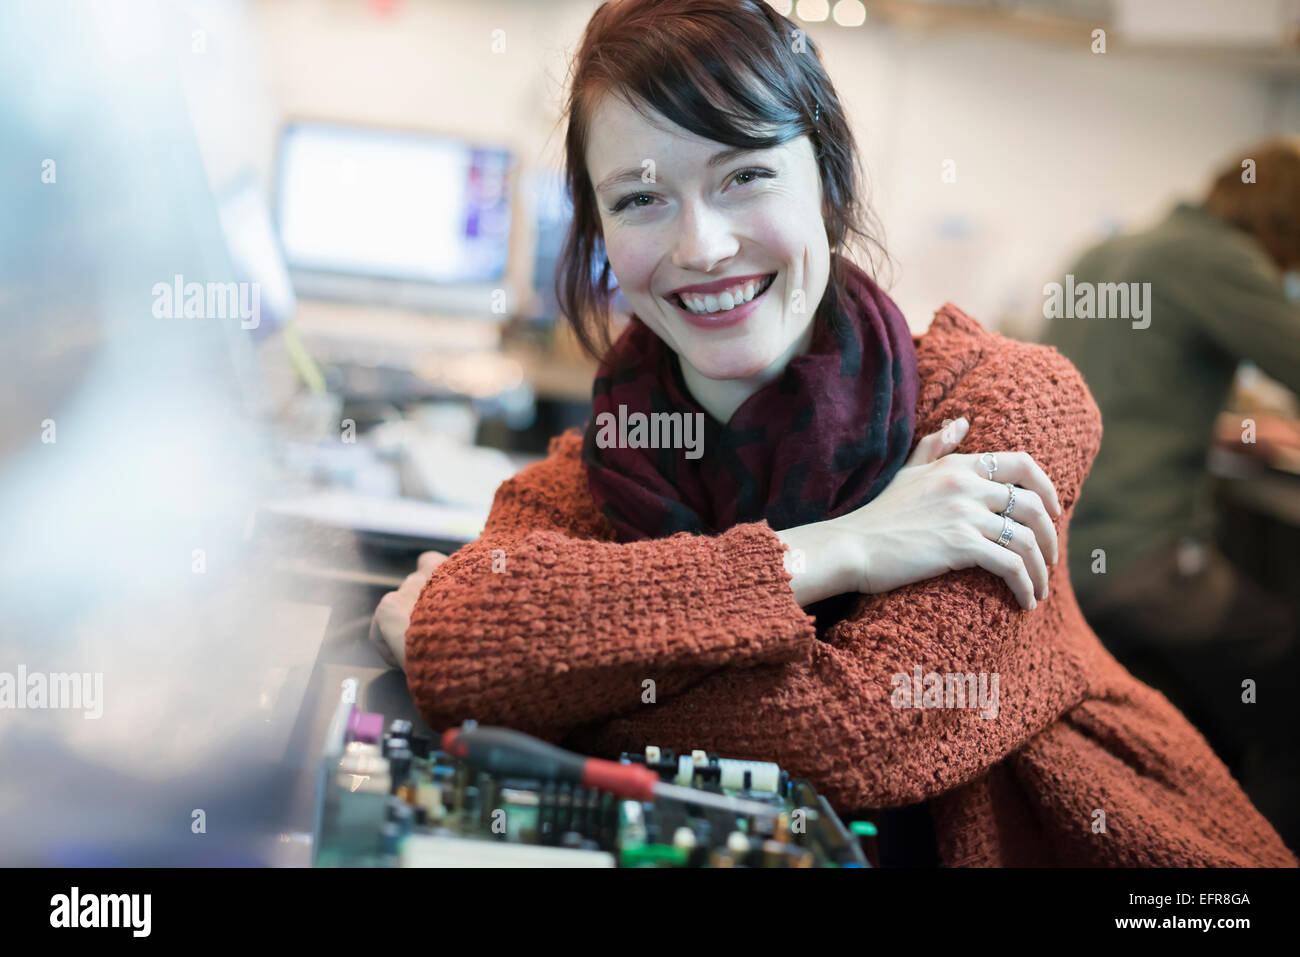 Computer Repair Shop. A woman smiling and leaning on a workshopcounter. - Stock Image